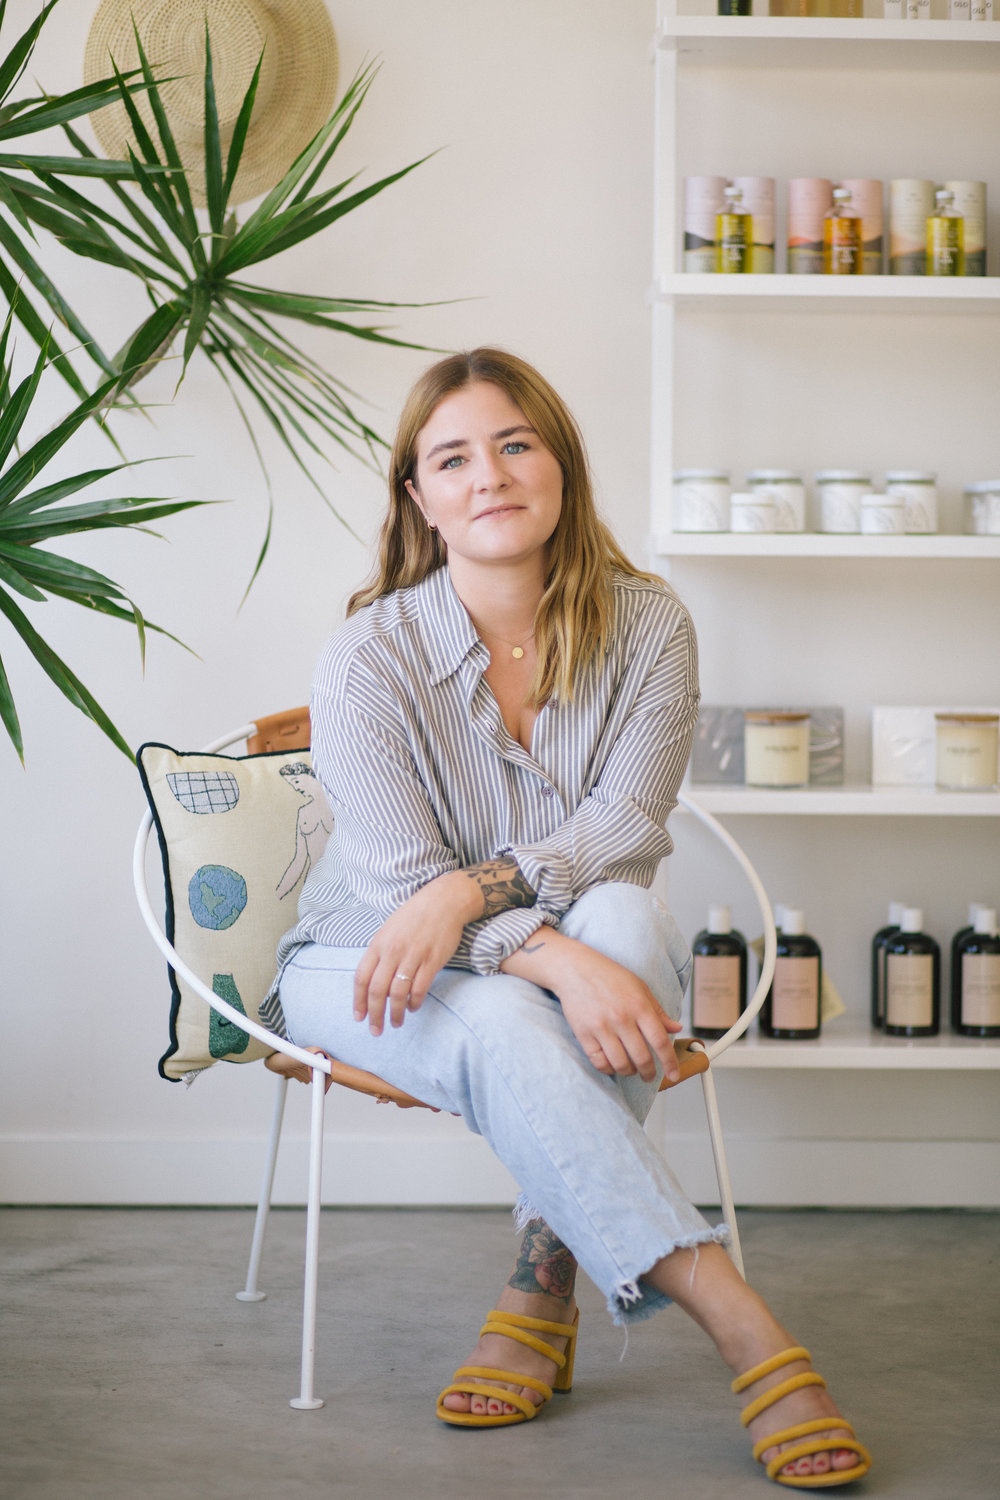 We are much stronger together than separate. - I work with my neighbors, and fellow girl bosses, at Little Dame to coordinate events like 'Fem Block Flea Market' to bring together other female creatives in our community.- Alex Hall, Owner of Maven SD